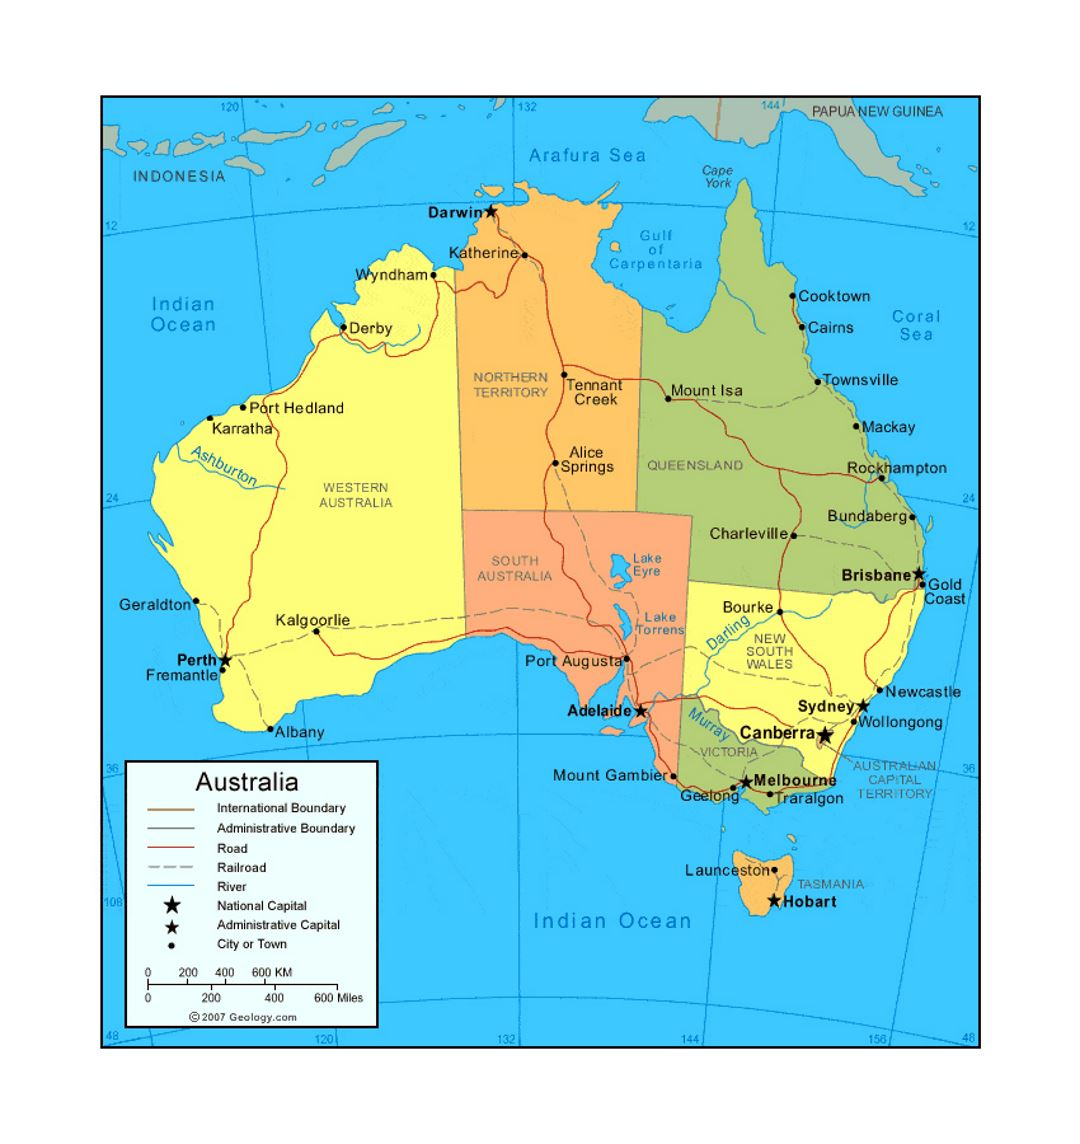 Major Cities In Australia Map.Political And Administrative Map Of Australia With Roads Railroads